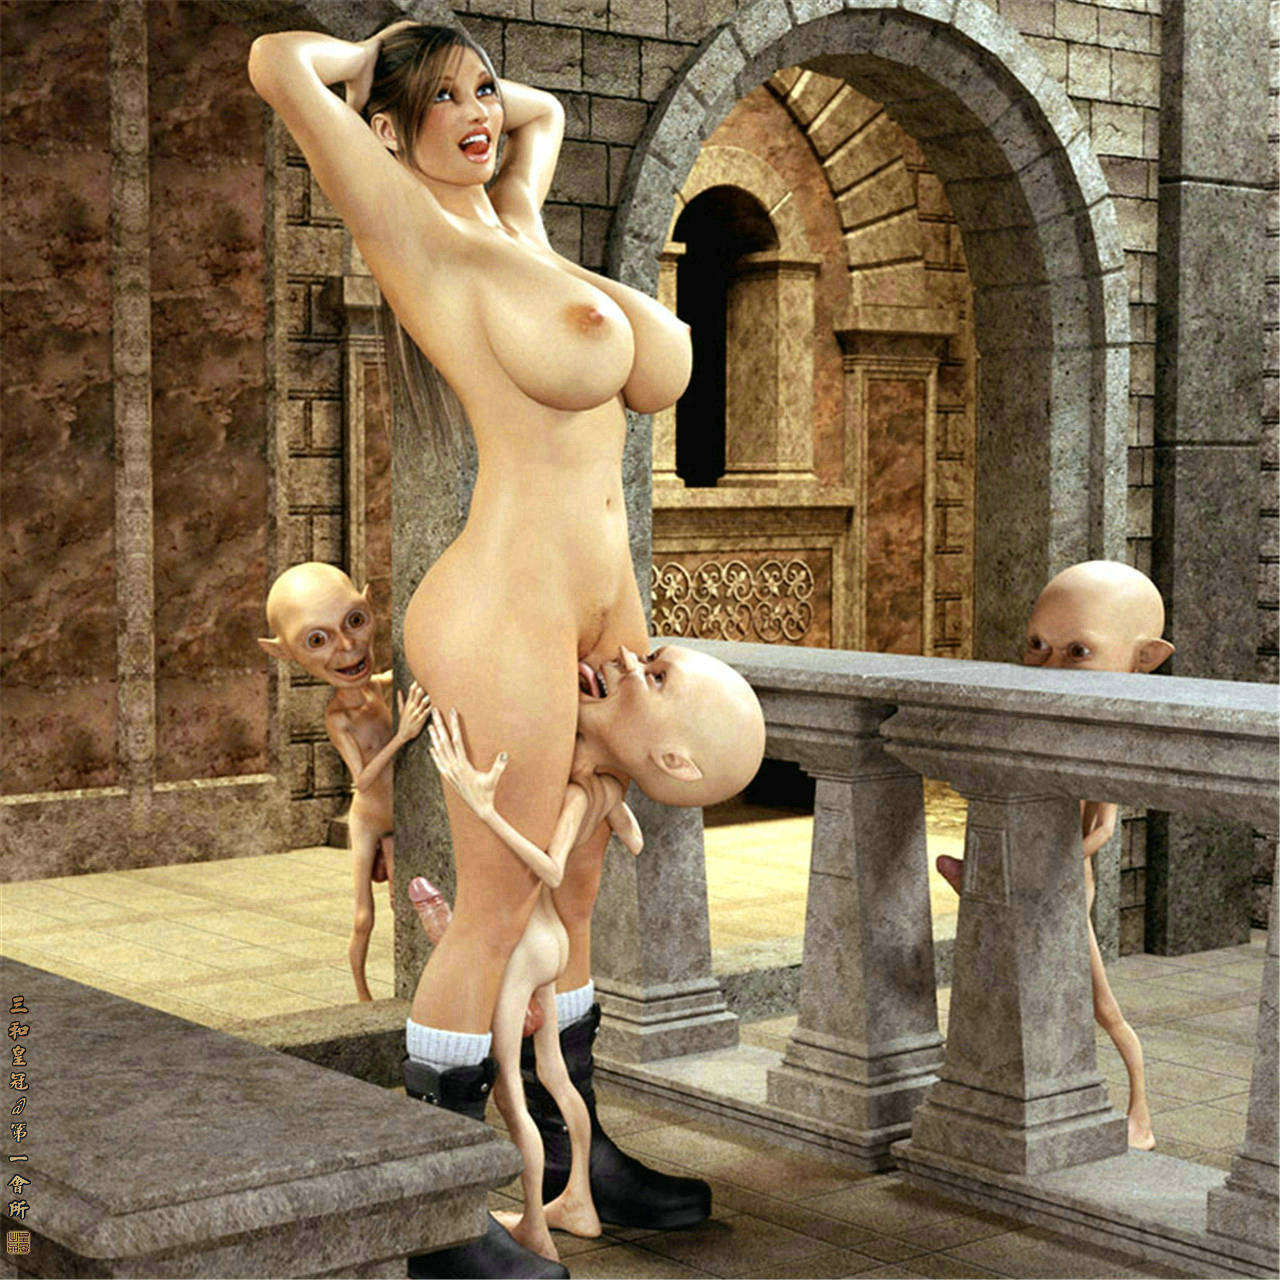 Erotic3d art porn videos